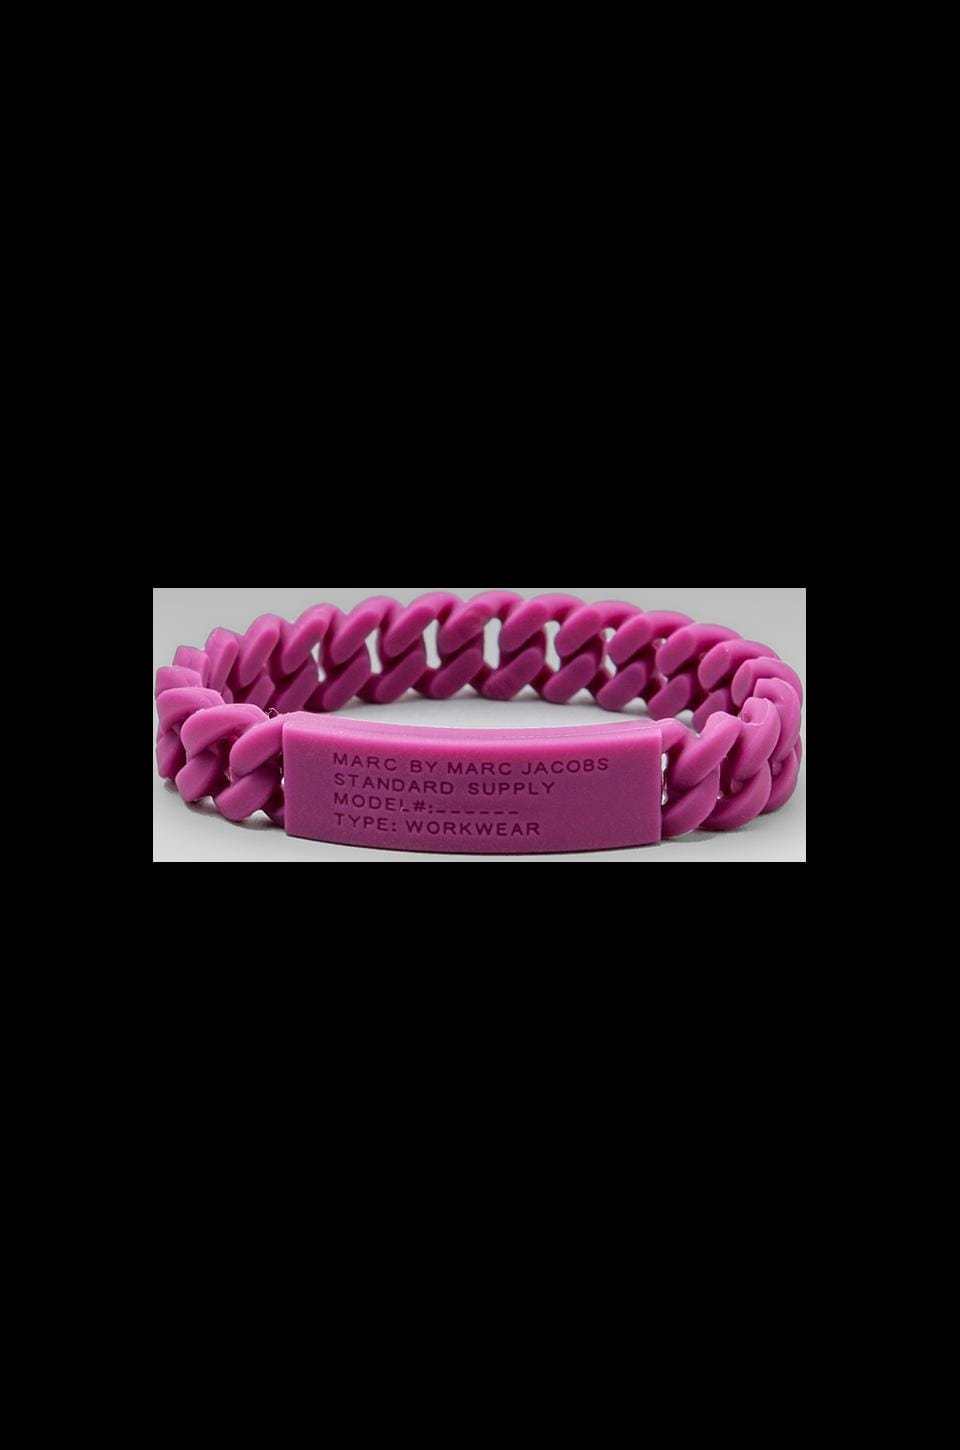 Marc by Marc Jacobs Rubber Standard Supply Bracelet in Plum